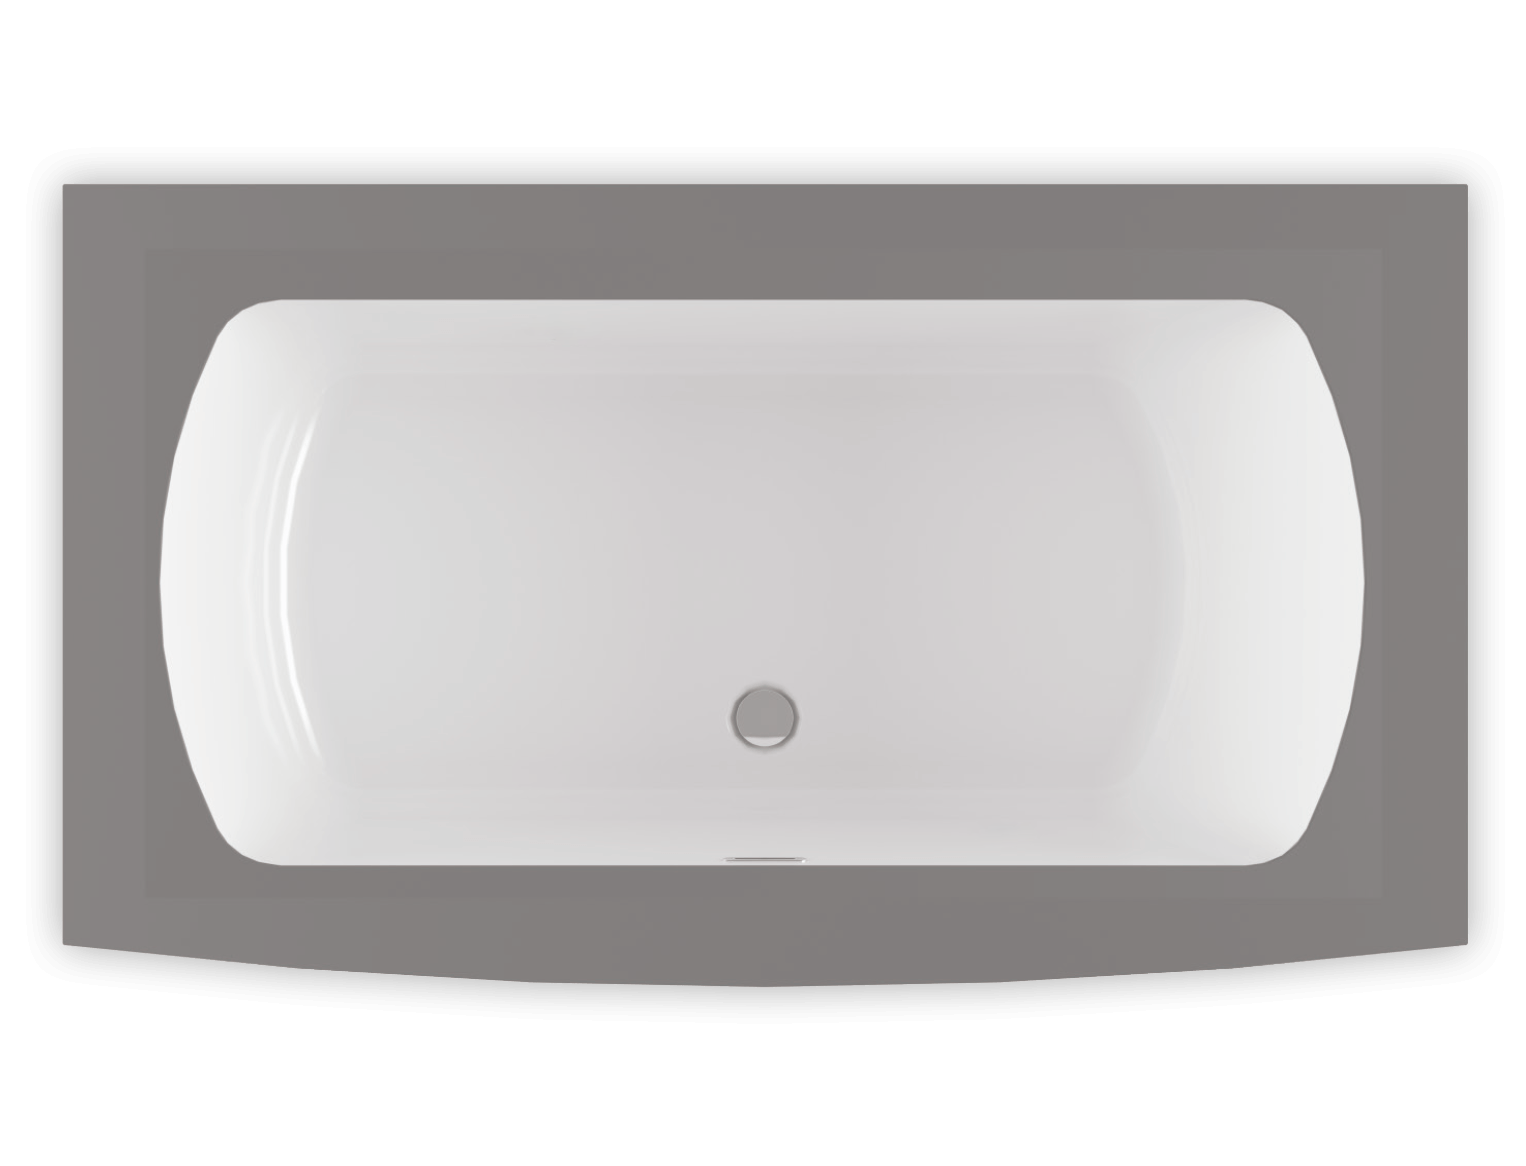 Monarch 6638F air jet bathtub for your modern bathroom